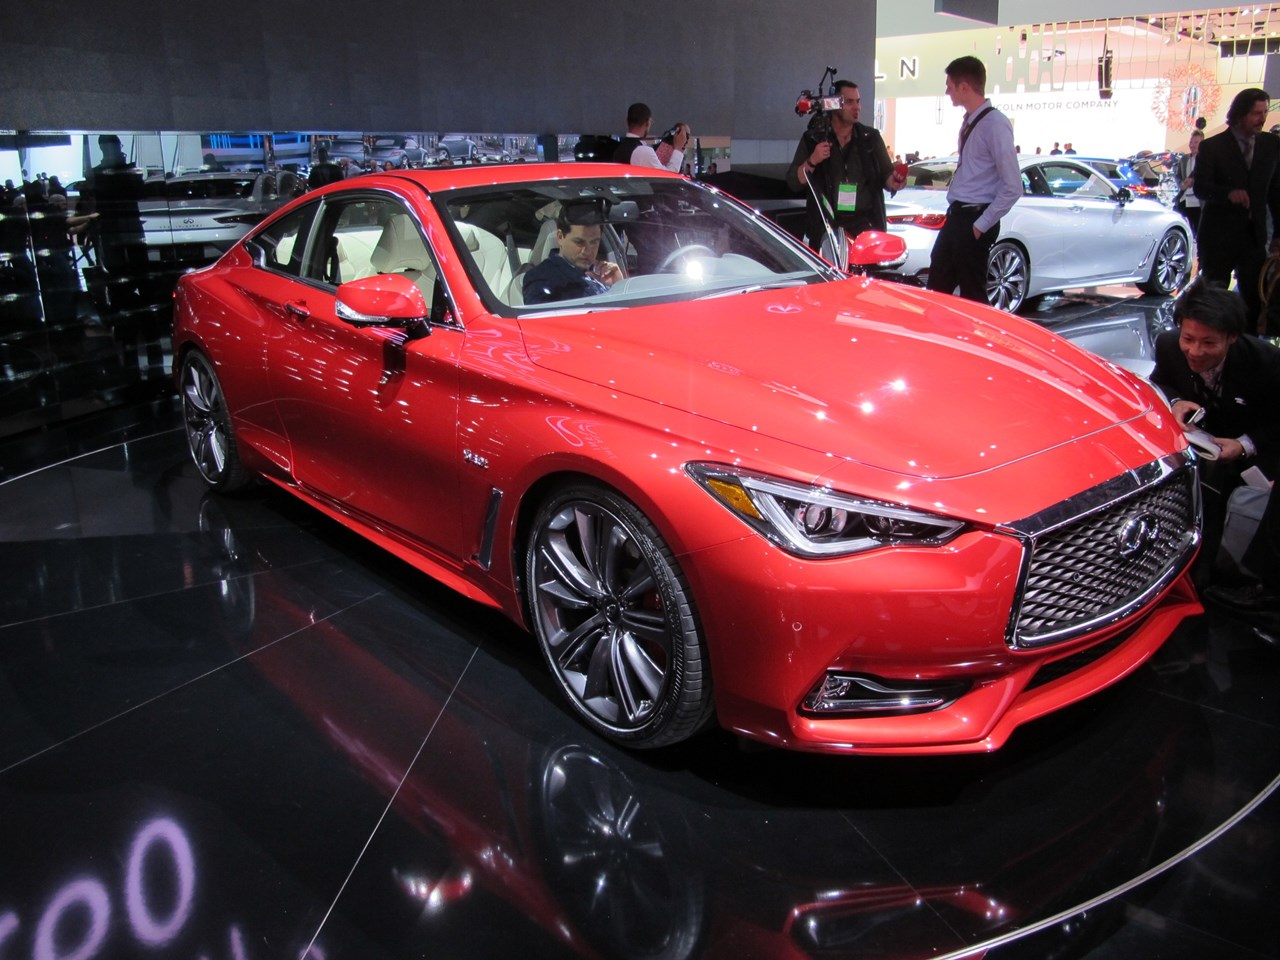 2020 Infiniti Q60 features, trim levels, and available options